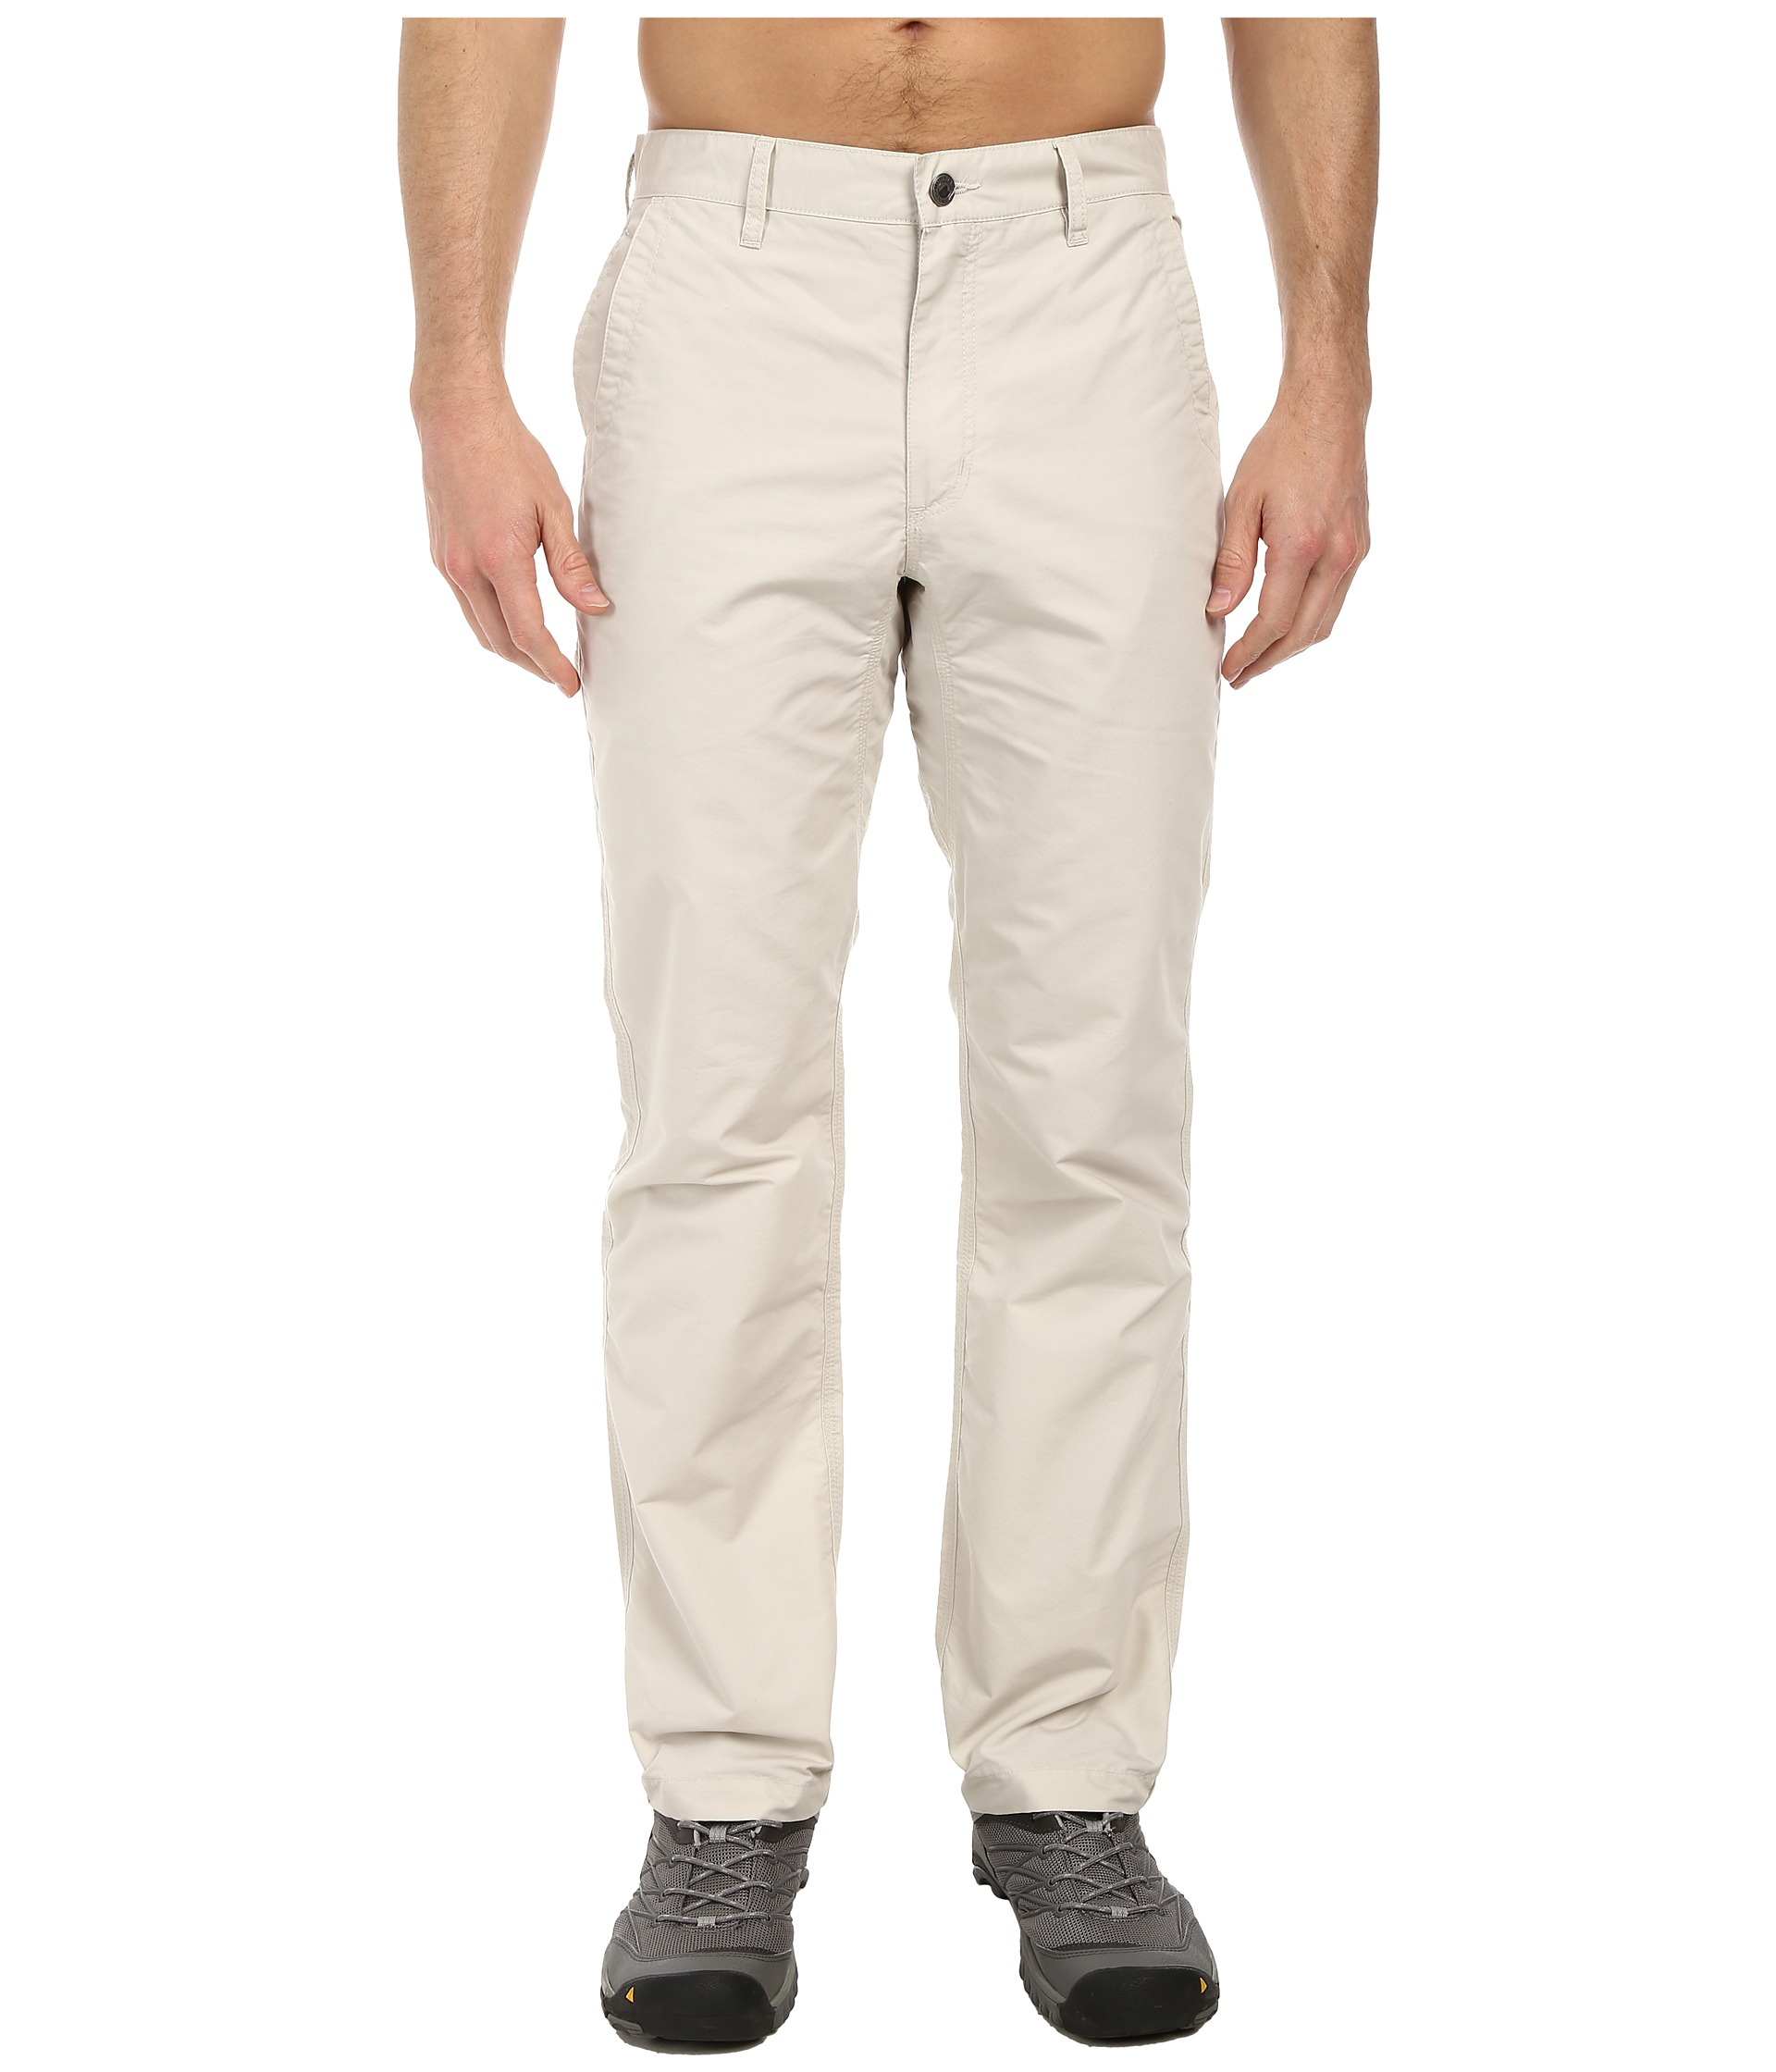 Shop from the world's largest selection and best deals for Slim Fit Khakis, Chinos Pants for Men. Free delivery and free returns on eBay Plus items.